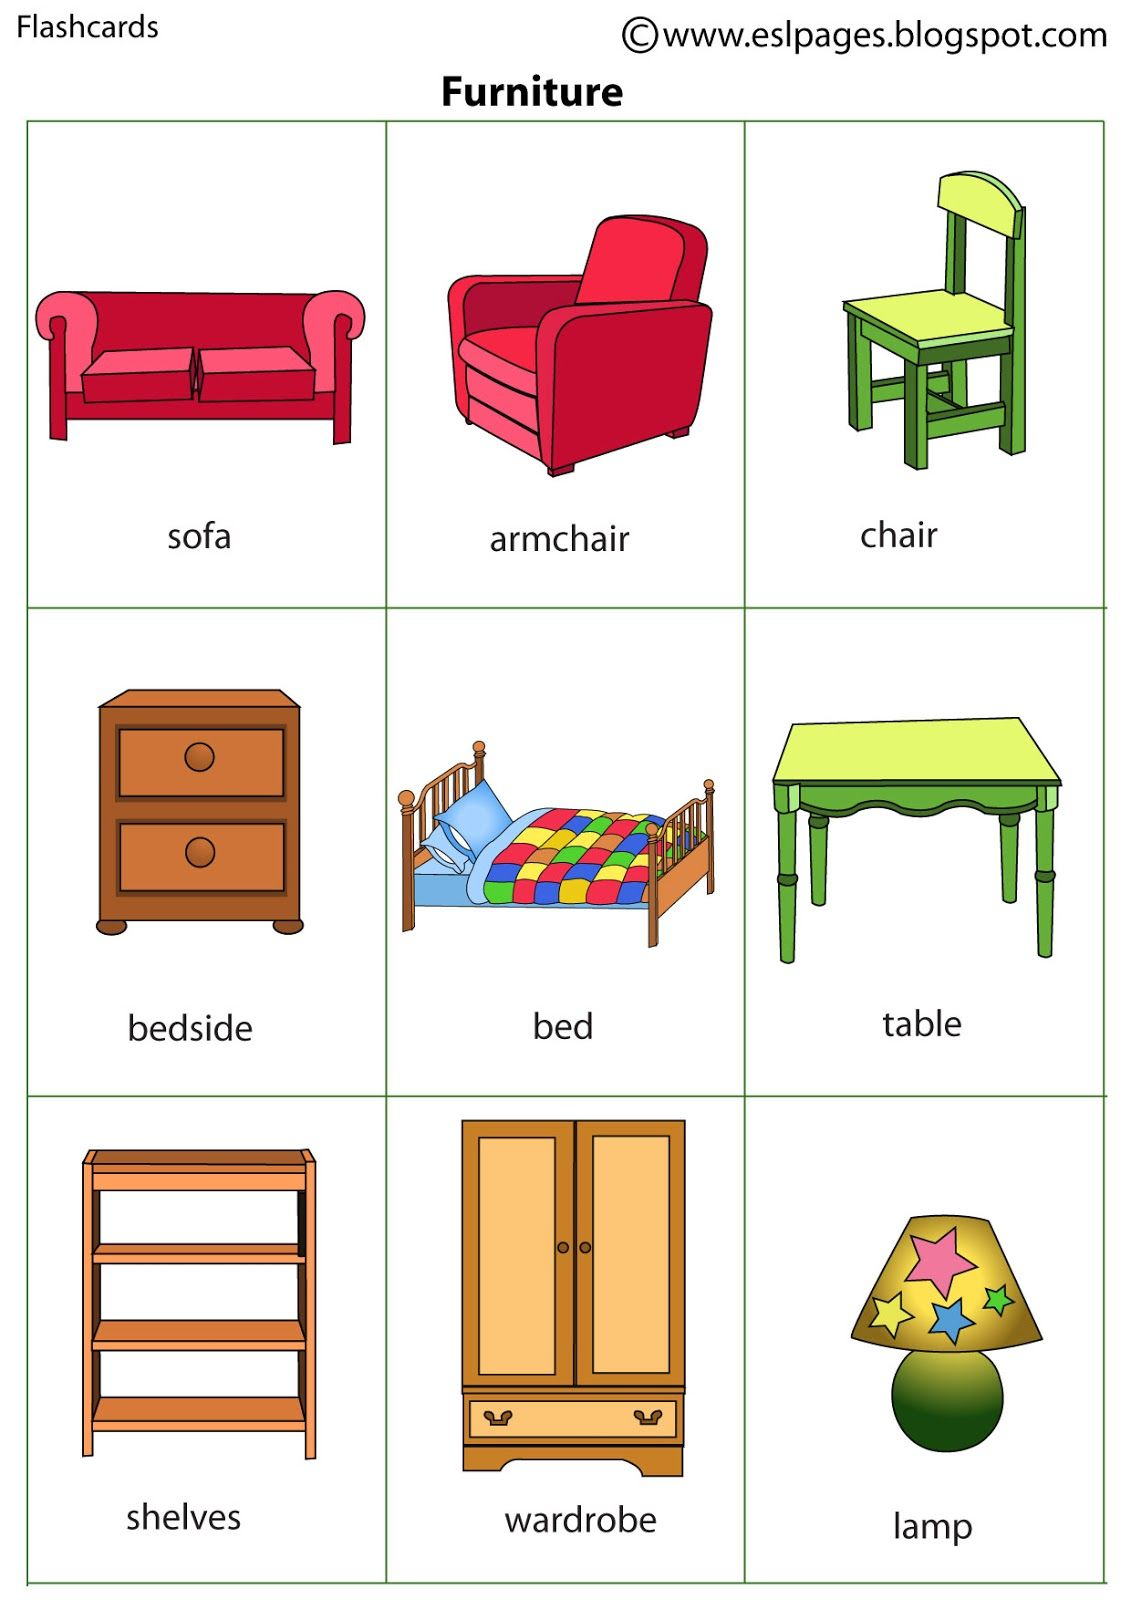 Bedroom furniture names in english - Download Furniture Images Vocabulary Buscar Con Google